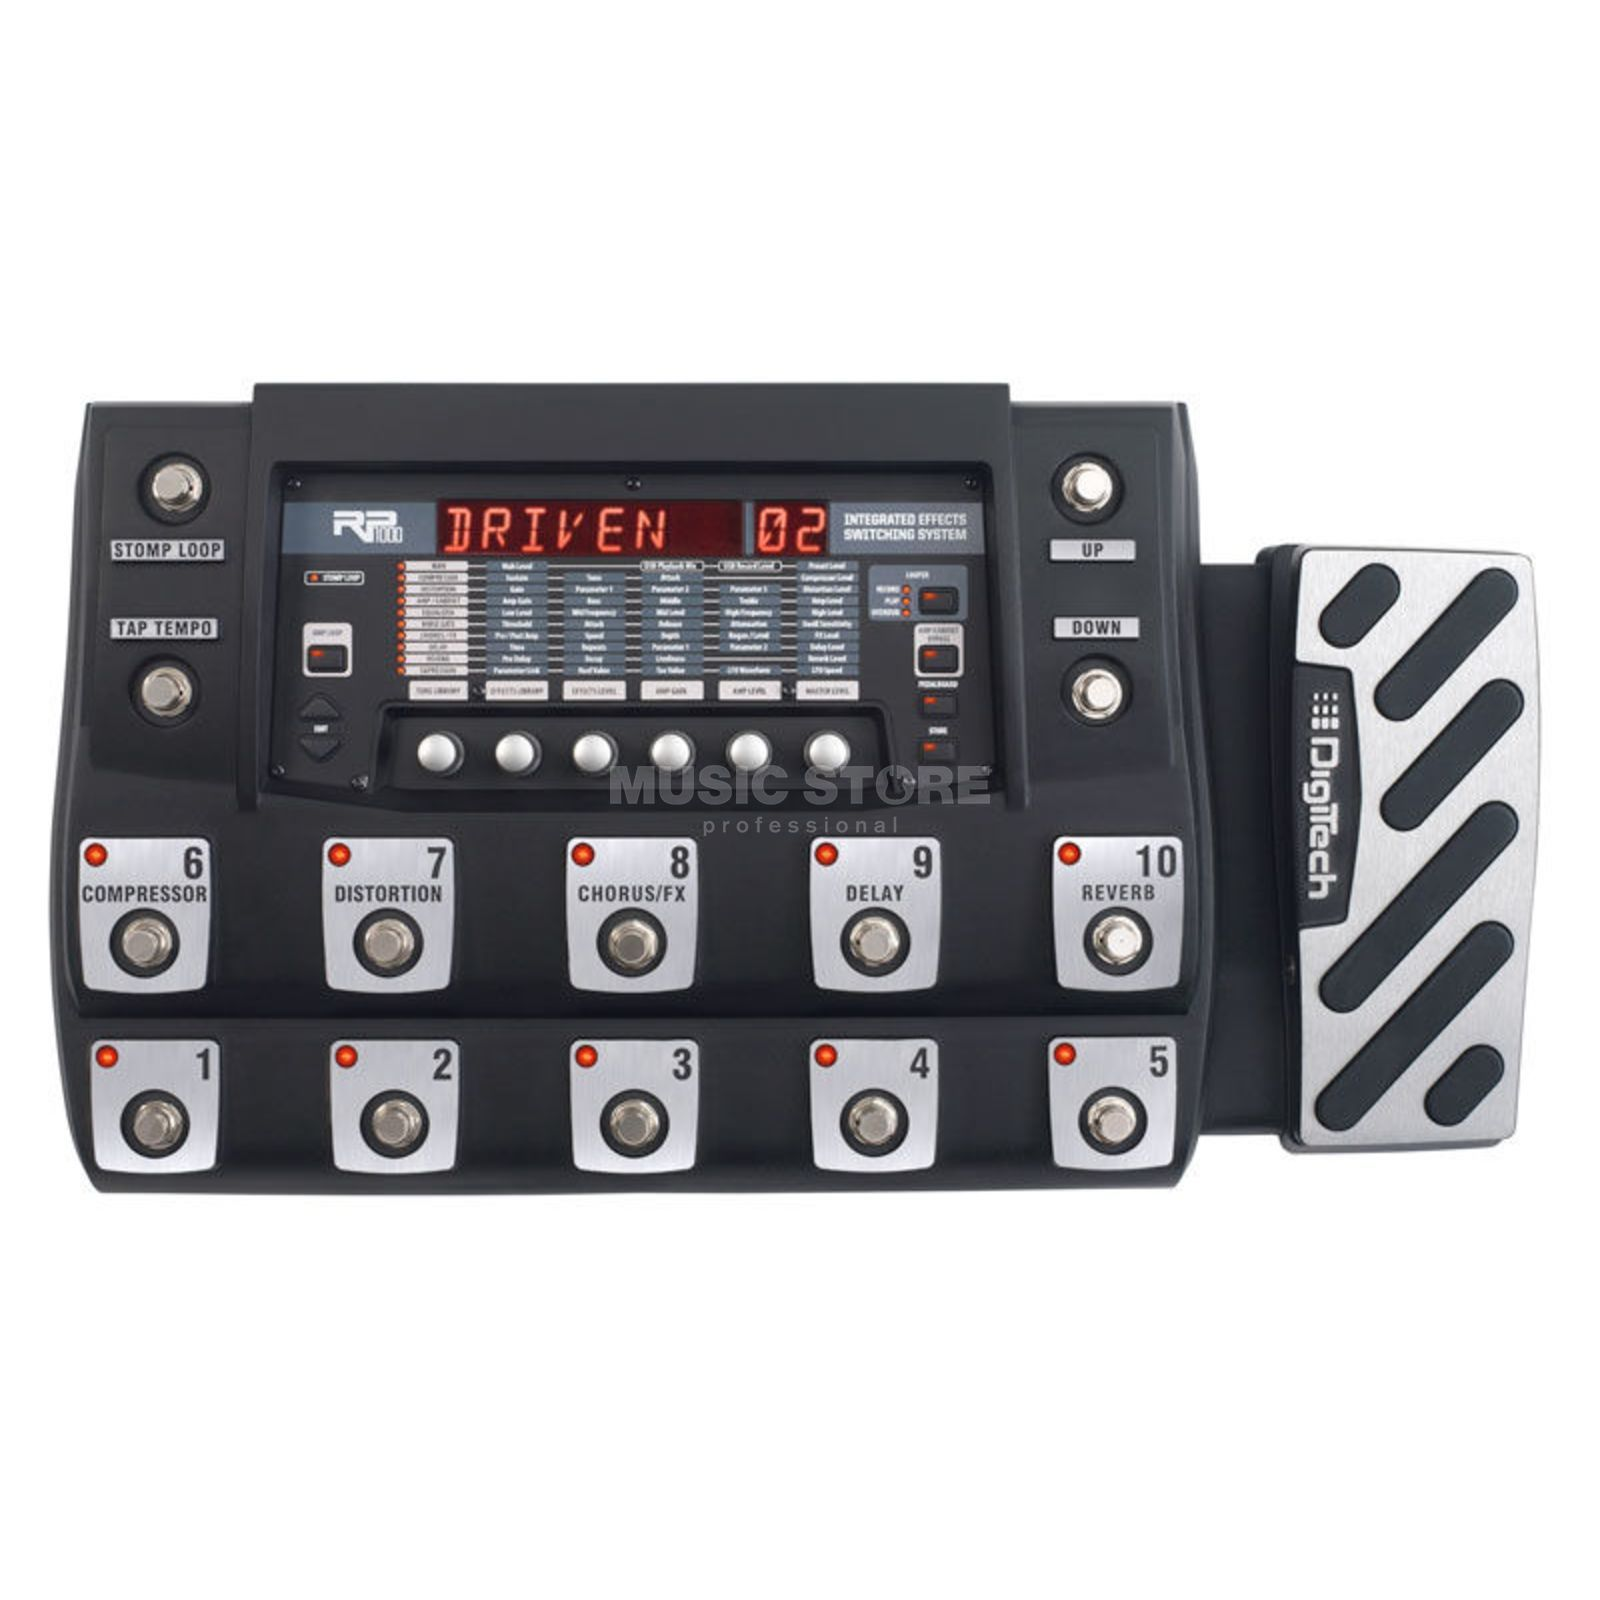 DigiTech RP1000 Guitar Multi-Effects Pr ocessor   Produktbillede